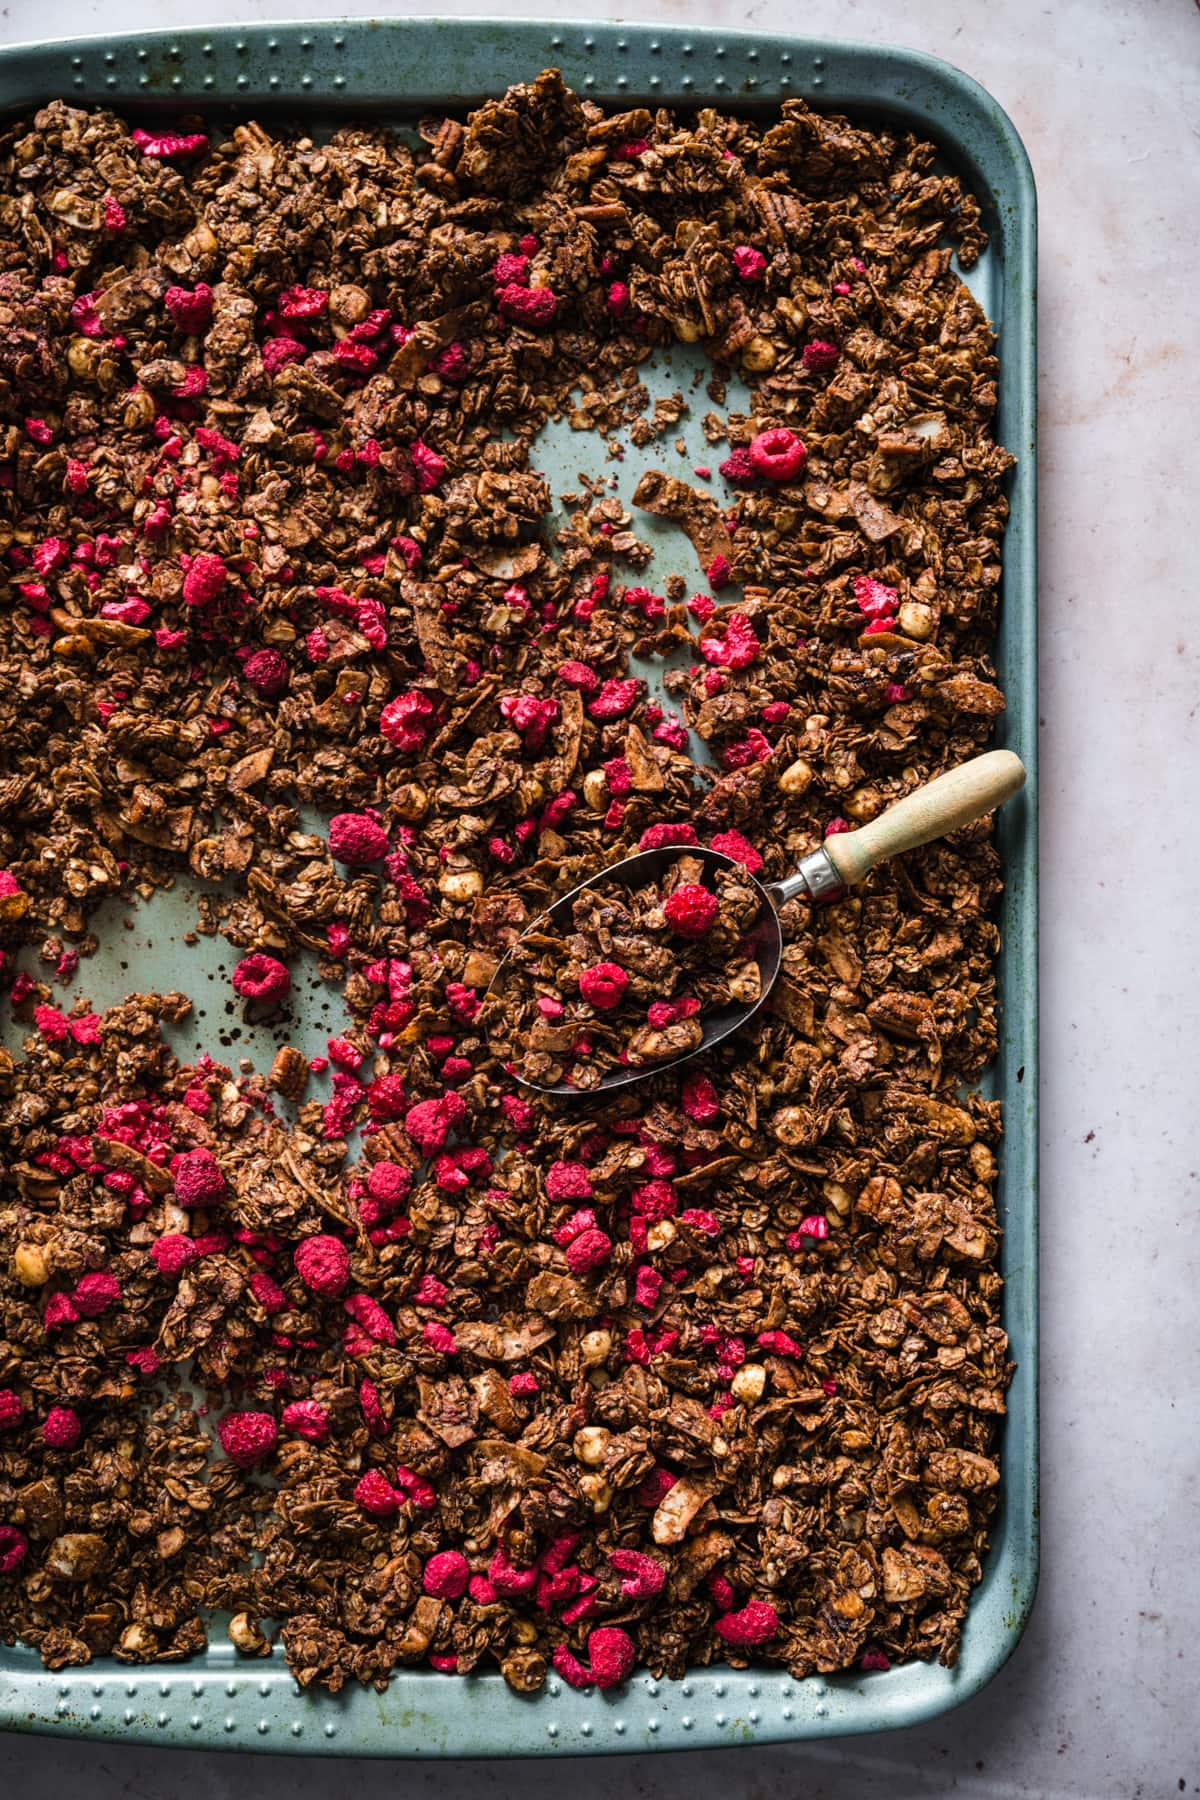 overhead view of chocolate hazelnut granola with freeze-dried raspberries on sheet pan.